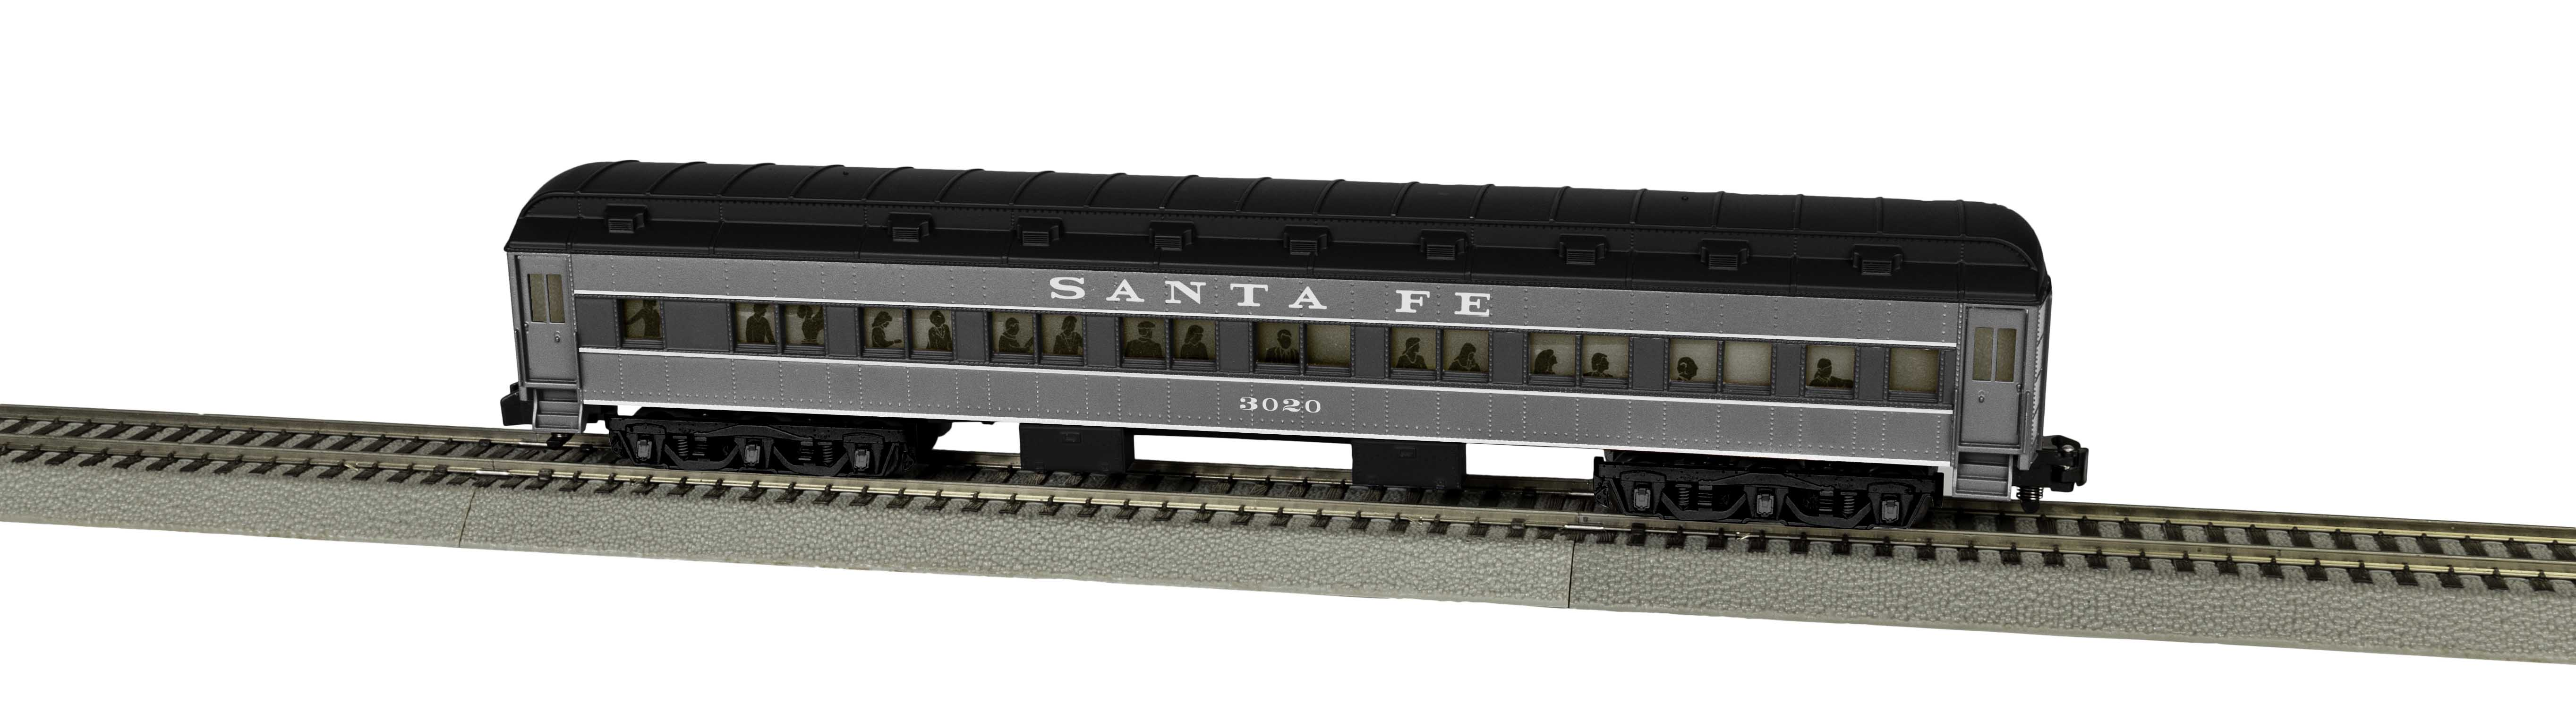 Lionel 2019252 S Santa Fe Heavyweight Coach #3020